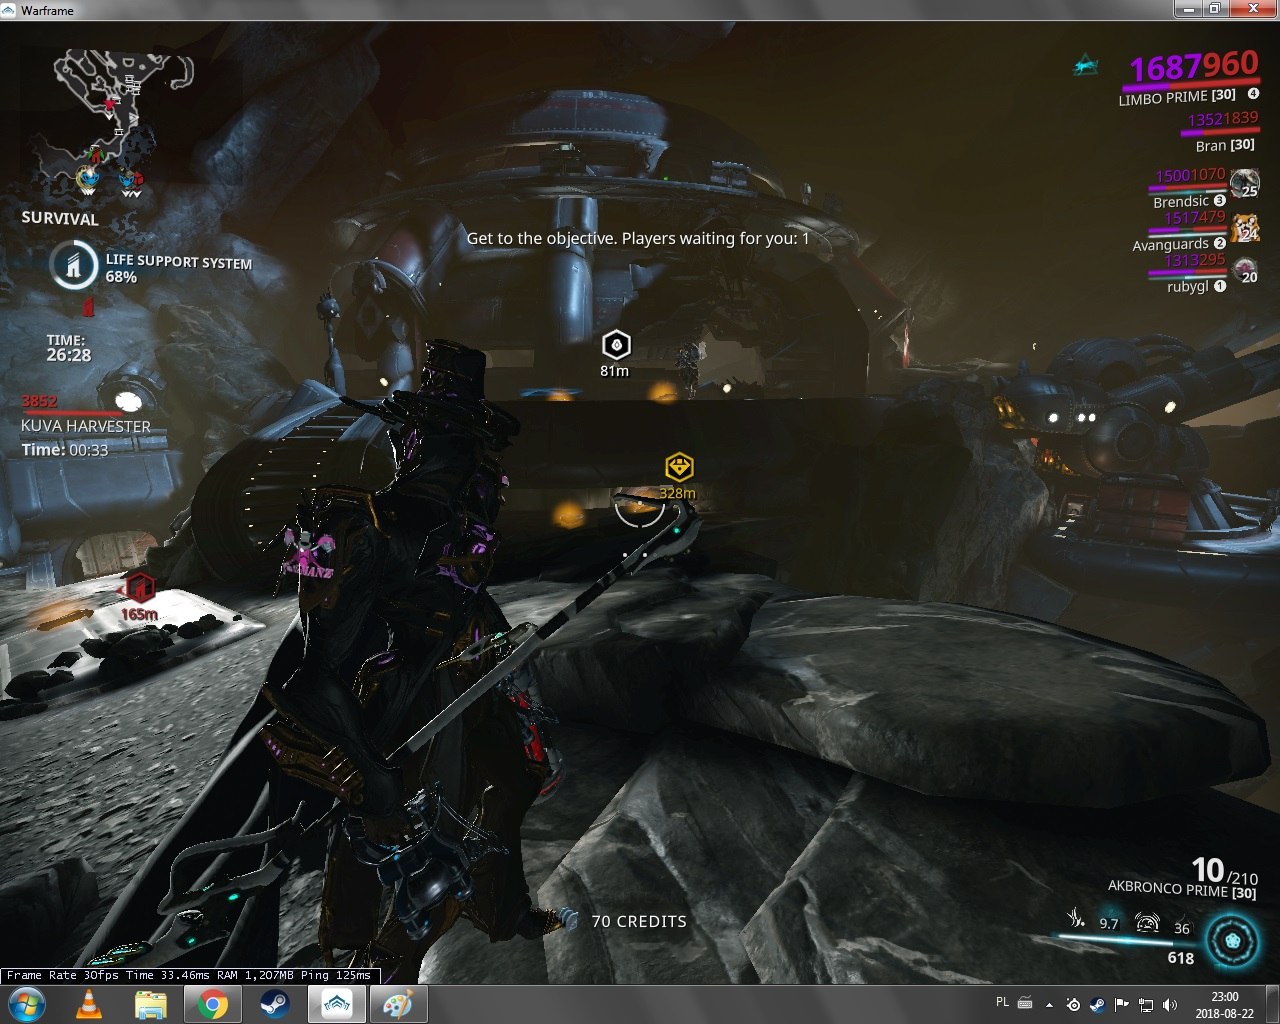 Kuva Fortress - how do i access this spot? - Players helping